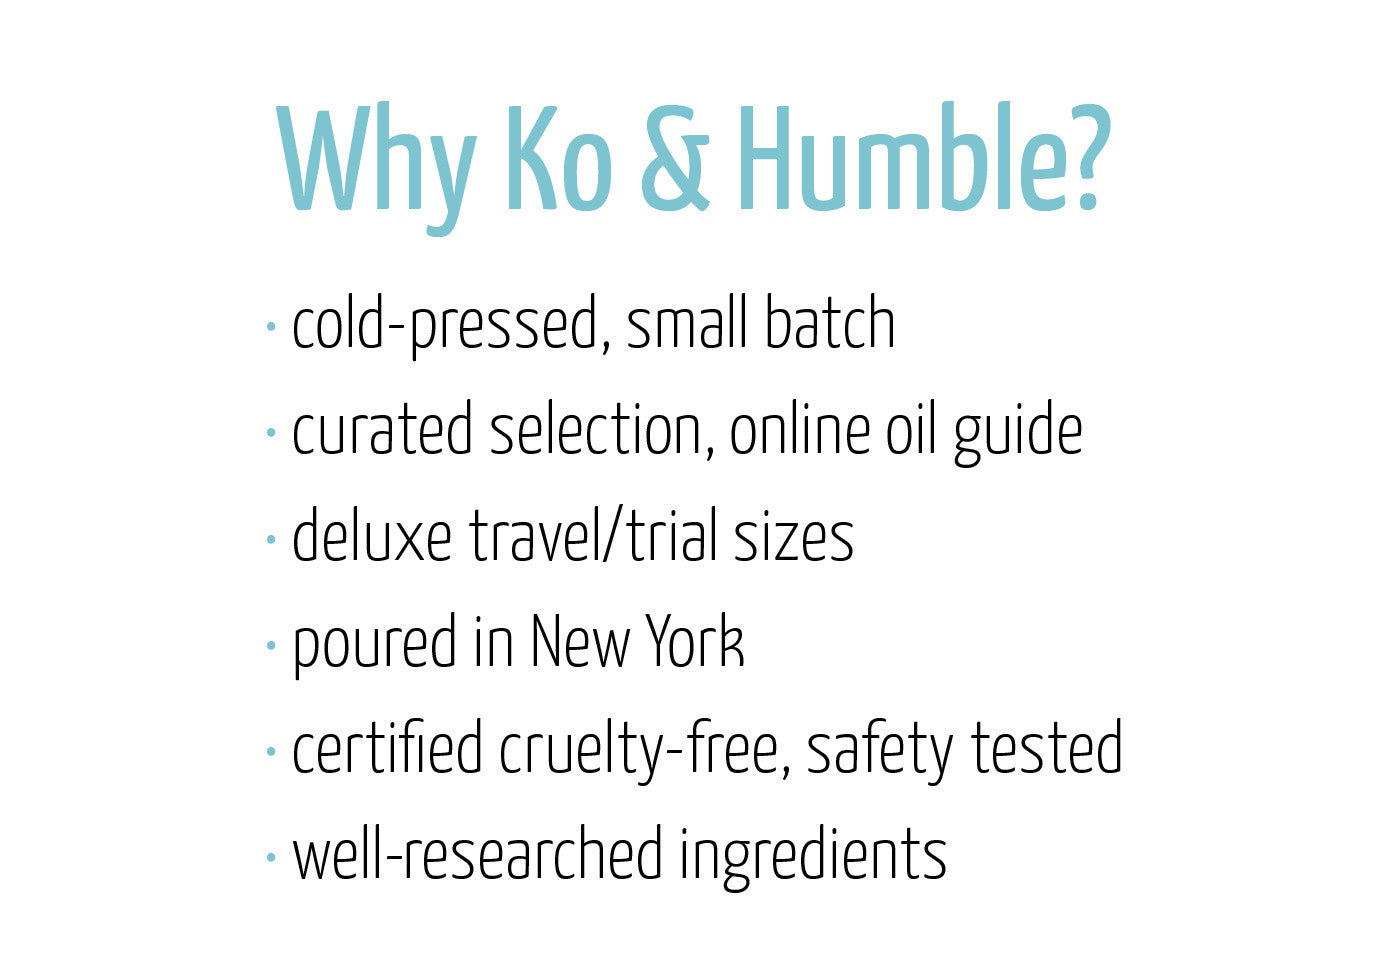 Ko & Humble Beautifying Oils